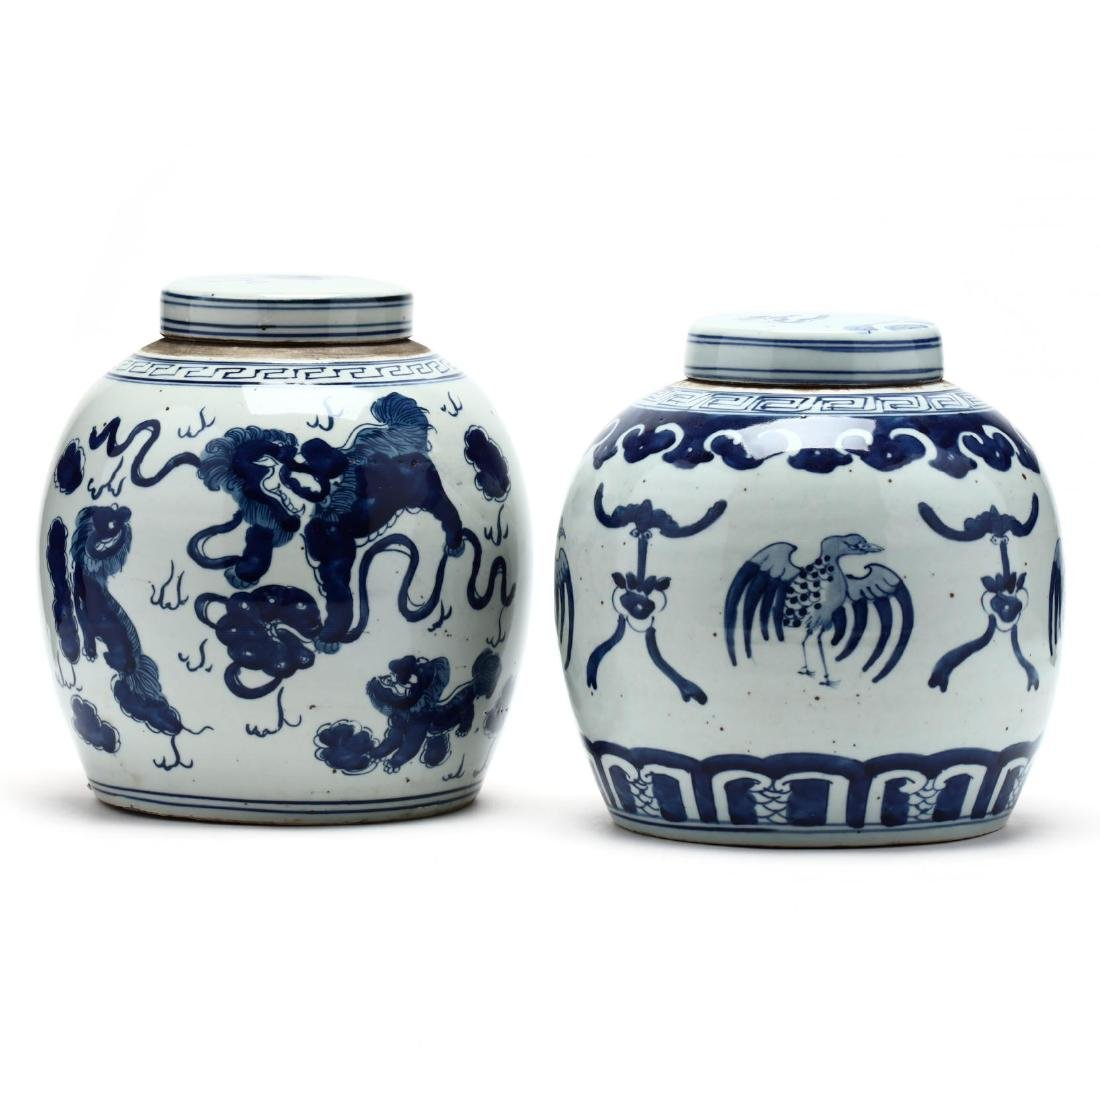 A Matched Pair of Unusual Chinese Porcelain Blue and